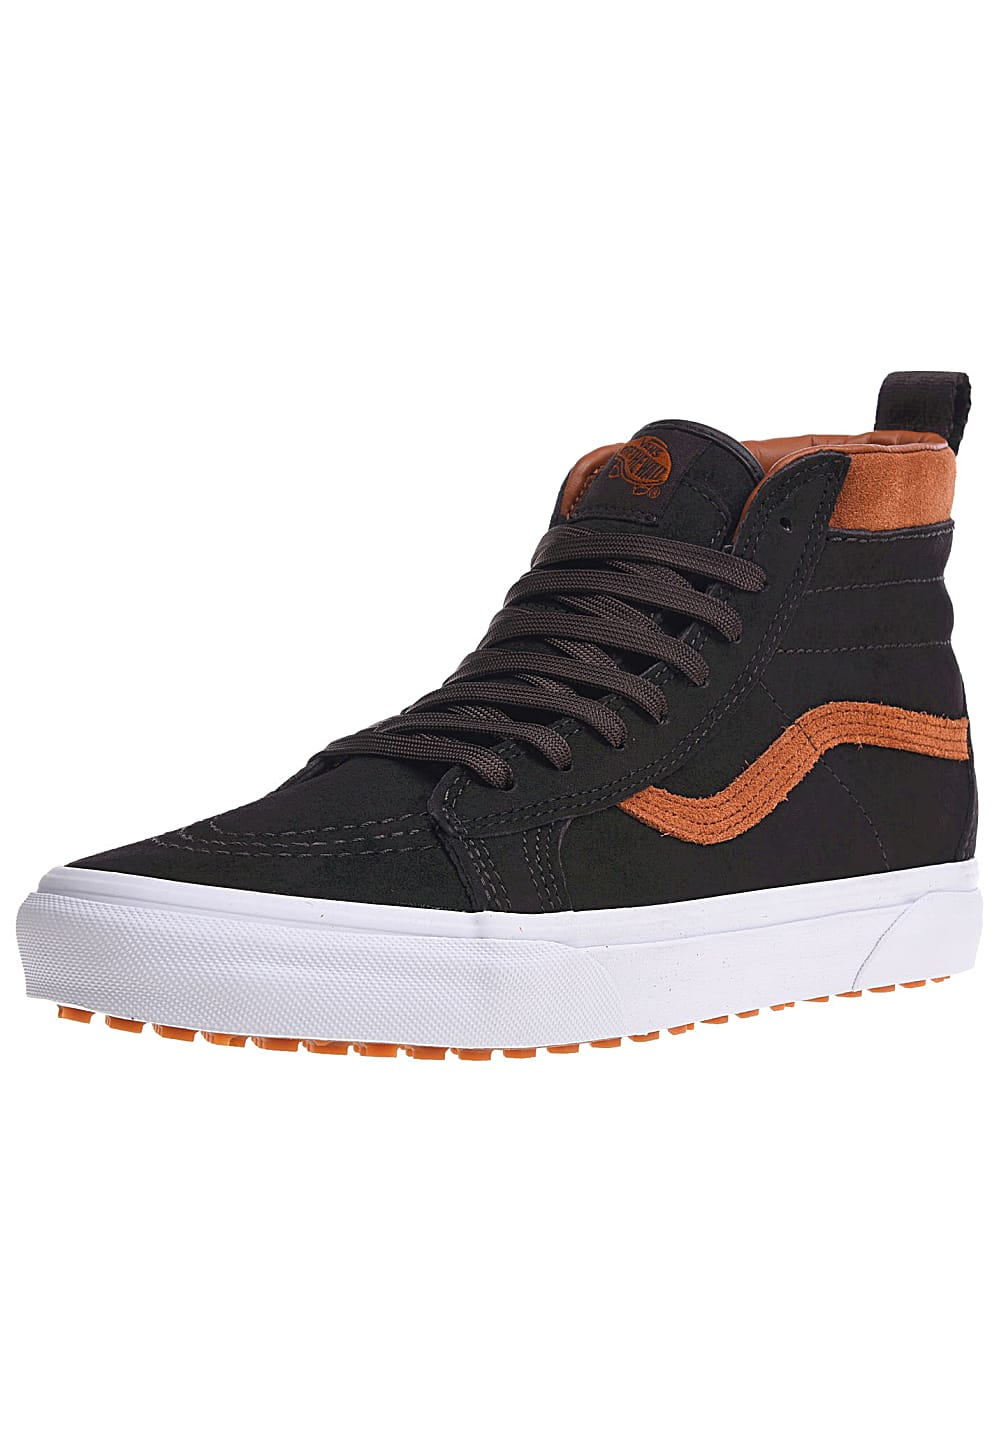 90655a9daf Vans Sk8-Hi Mte - Sneakers - Brown - Planet Sports